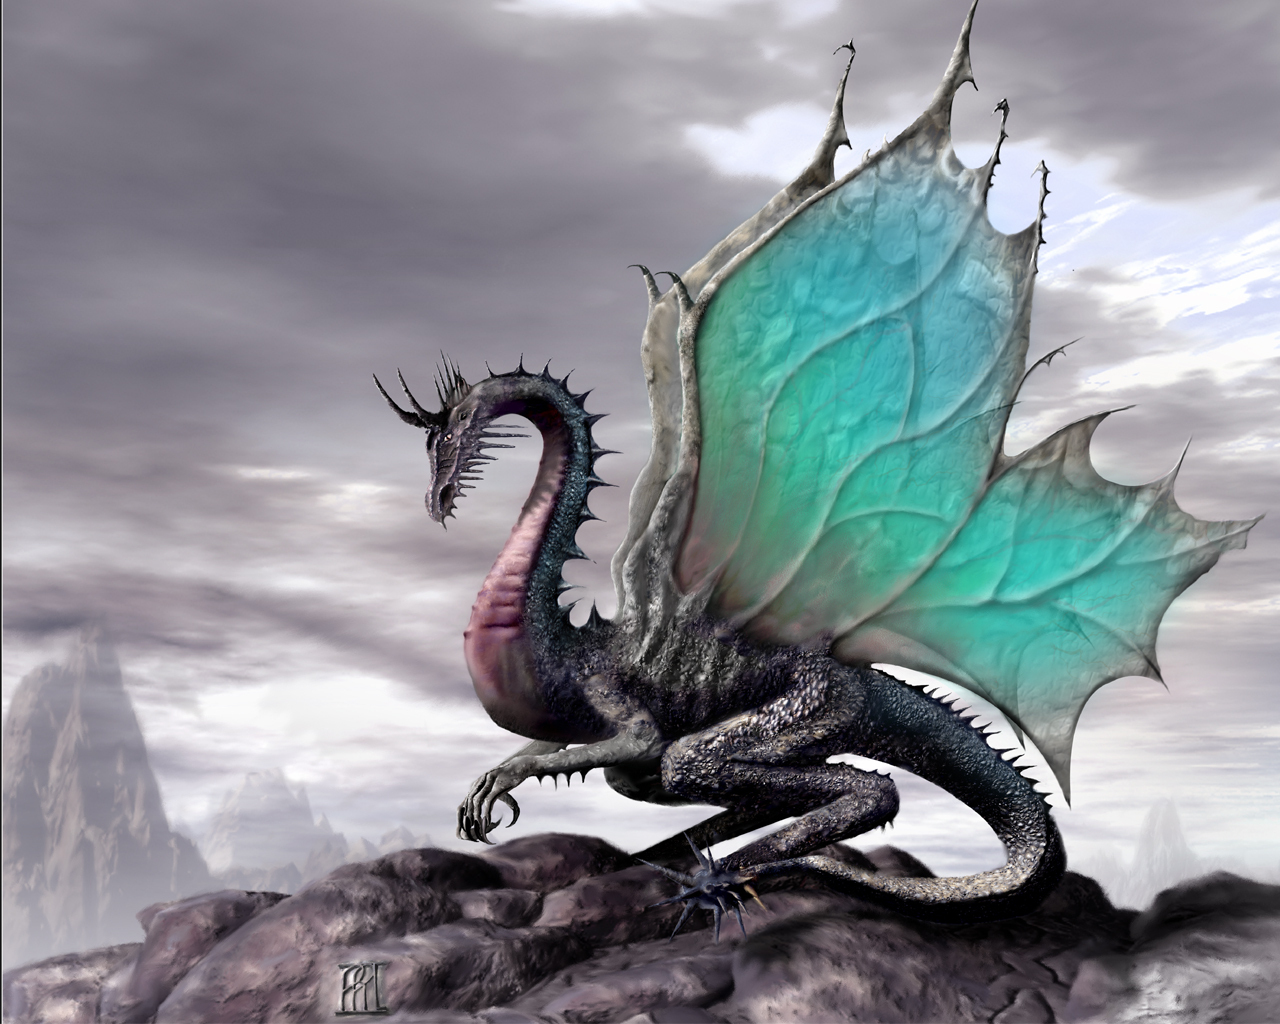 http://images2.fanpop.com/images/photos/4800000/fantasy-dragon-dragons-4814431-1280-1024.jpg